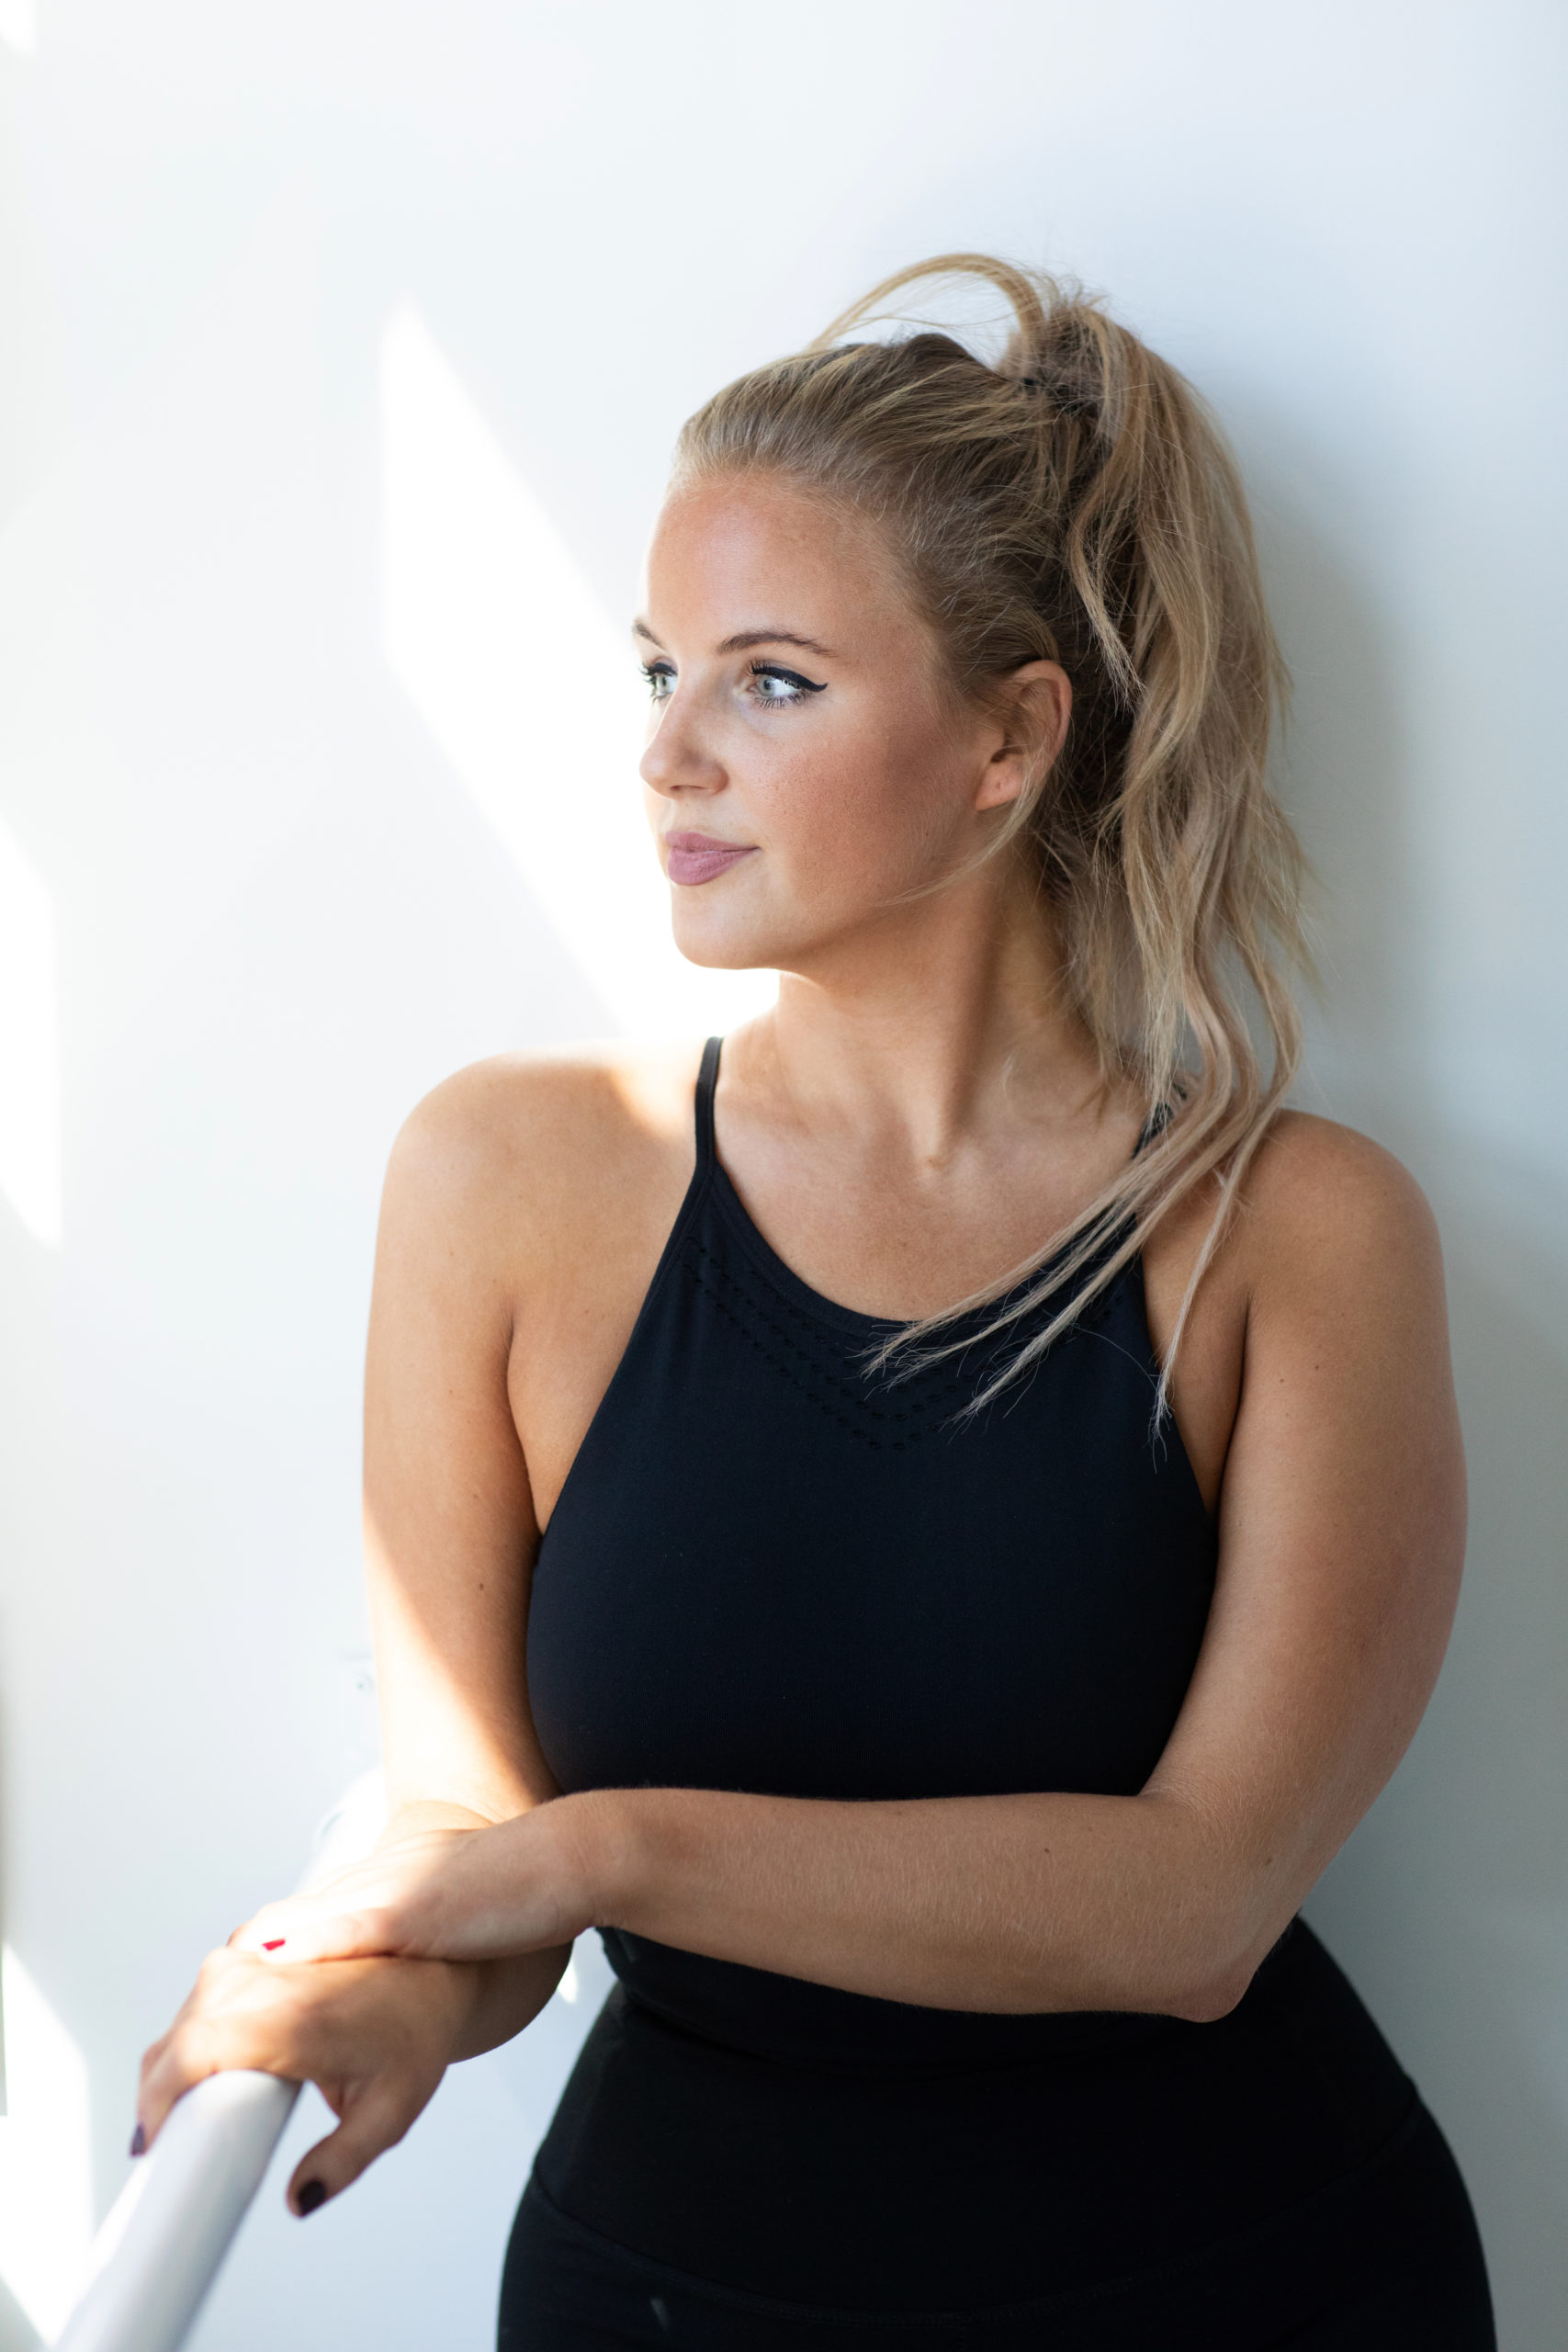 Natalia is a Barreroom instructor in Kelowna, BC that teaches classes online so people can enjoy barre at home.